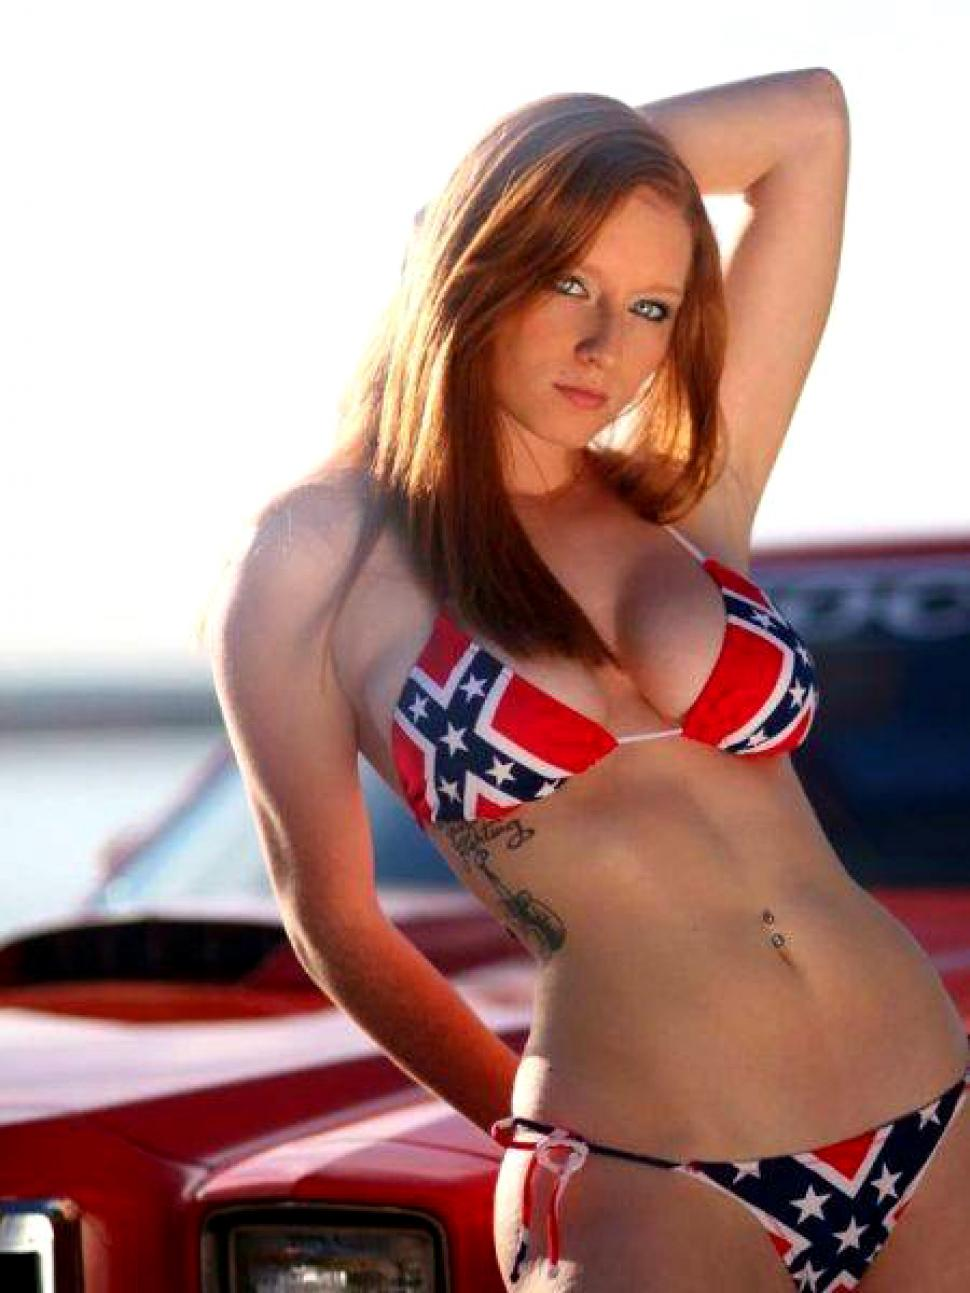 52b06227c2 15 Reasons Not To Ban The Confederate Flag - Gallery